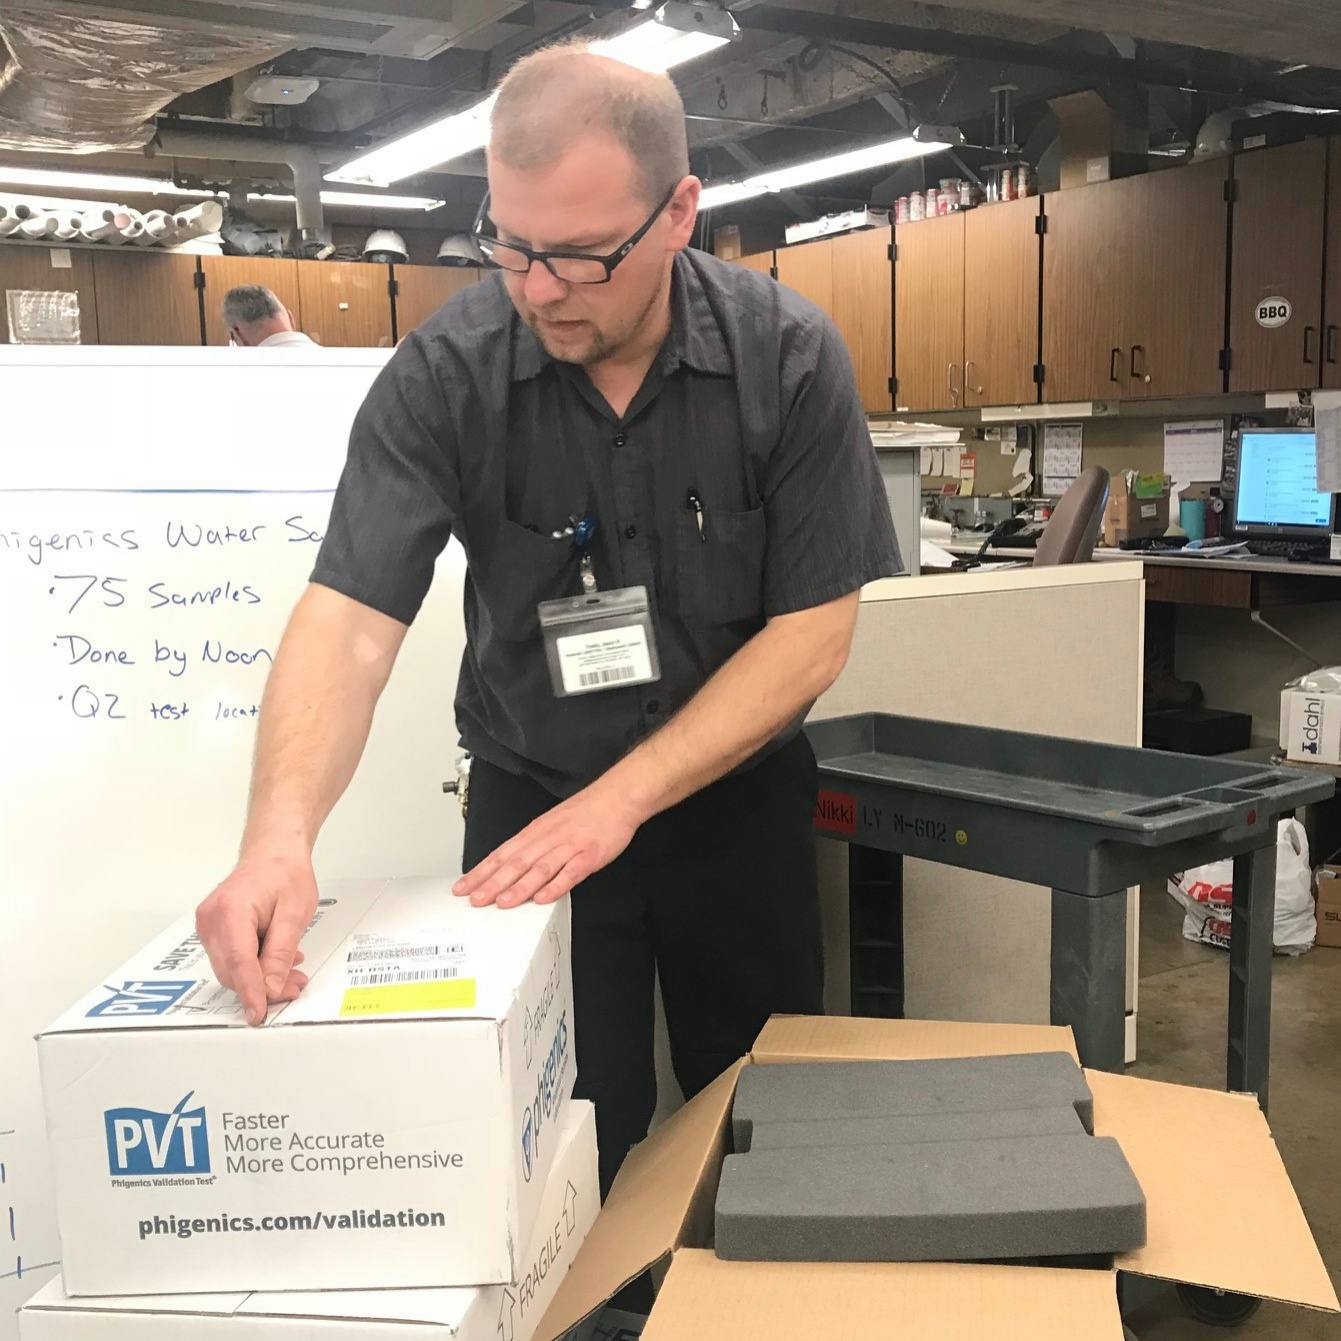 a Mayo Clinic facilities worker unpacking supplies